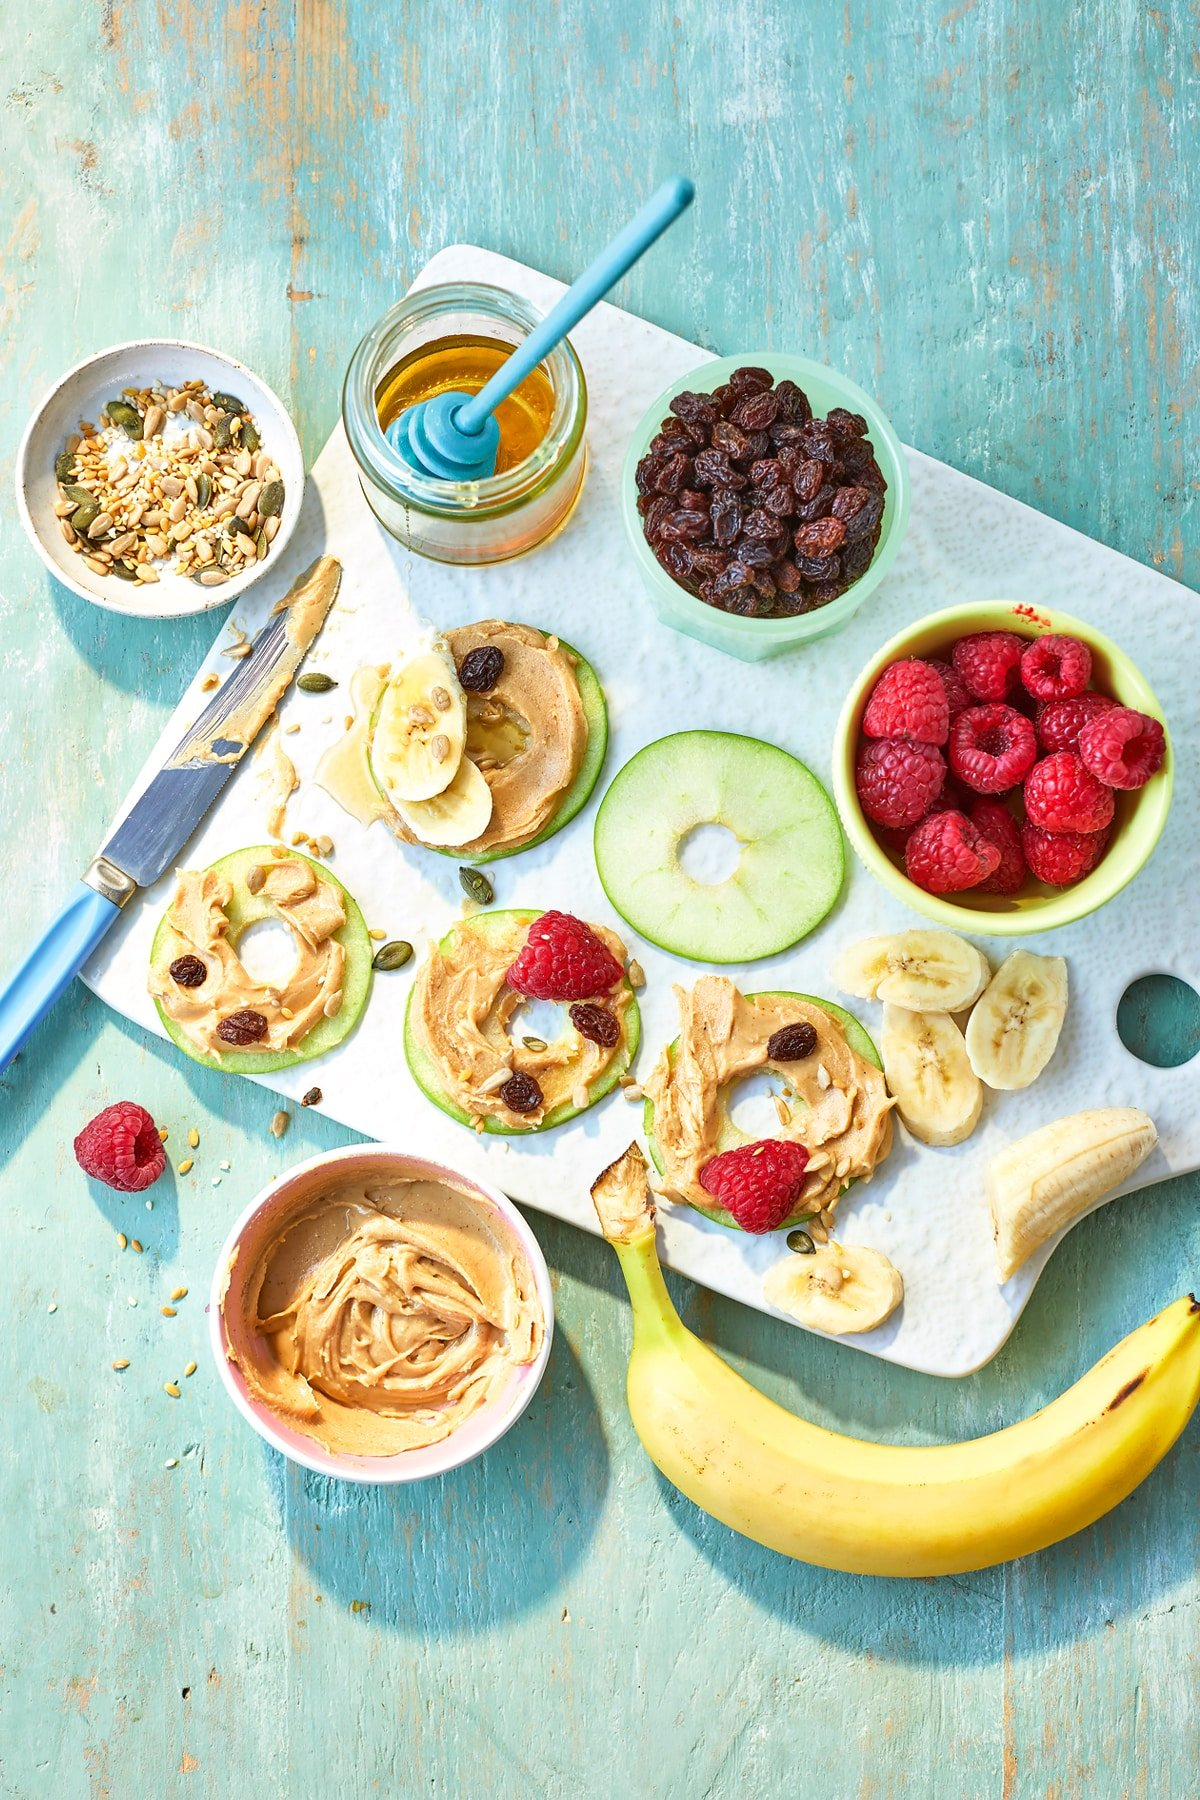 Apple slices with peanut butter on a white board, surrounded by topping ingredients such as raspberries, seeds, honey and banana slices.